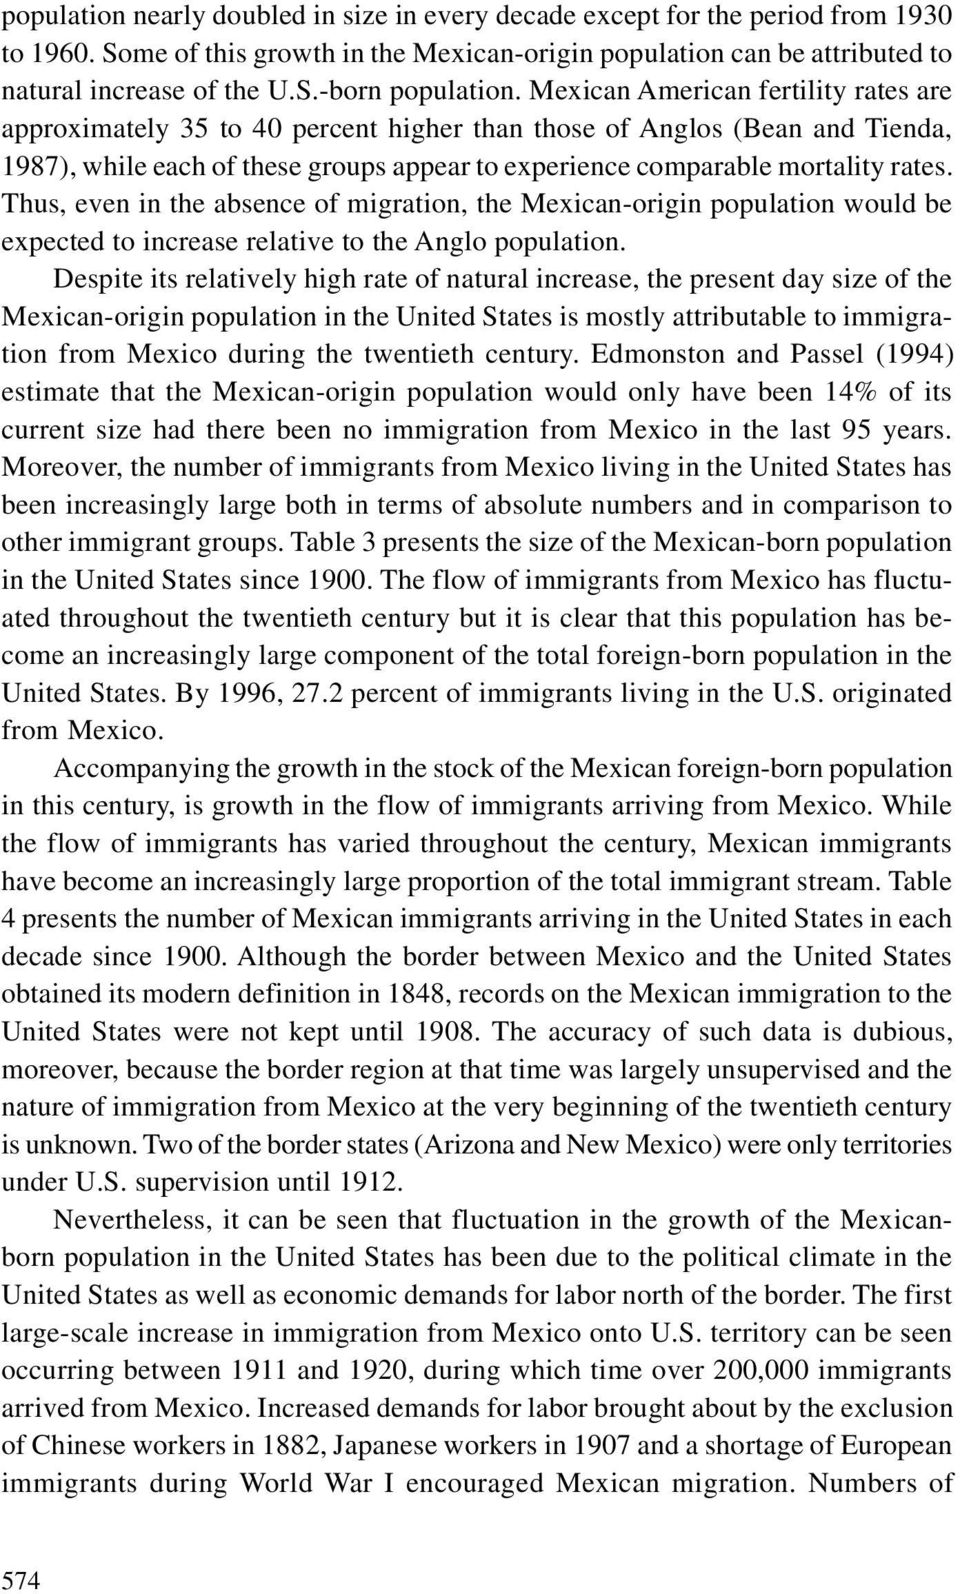 Thus, even in the absence of migration, the Mexican-origin population would be expected to increase relative to the Anglo population.